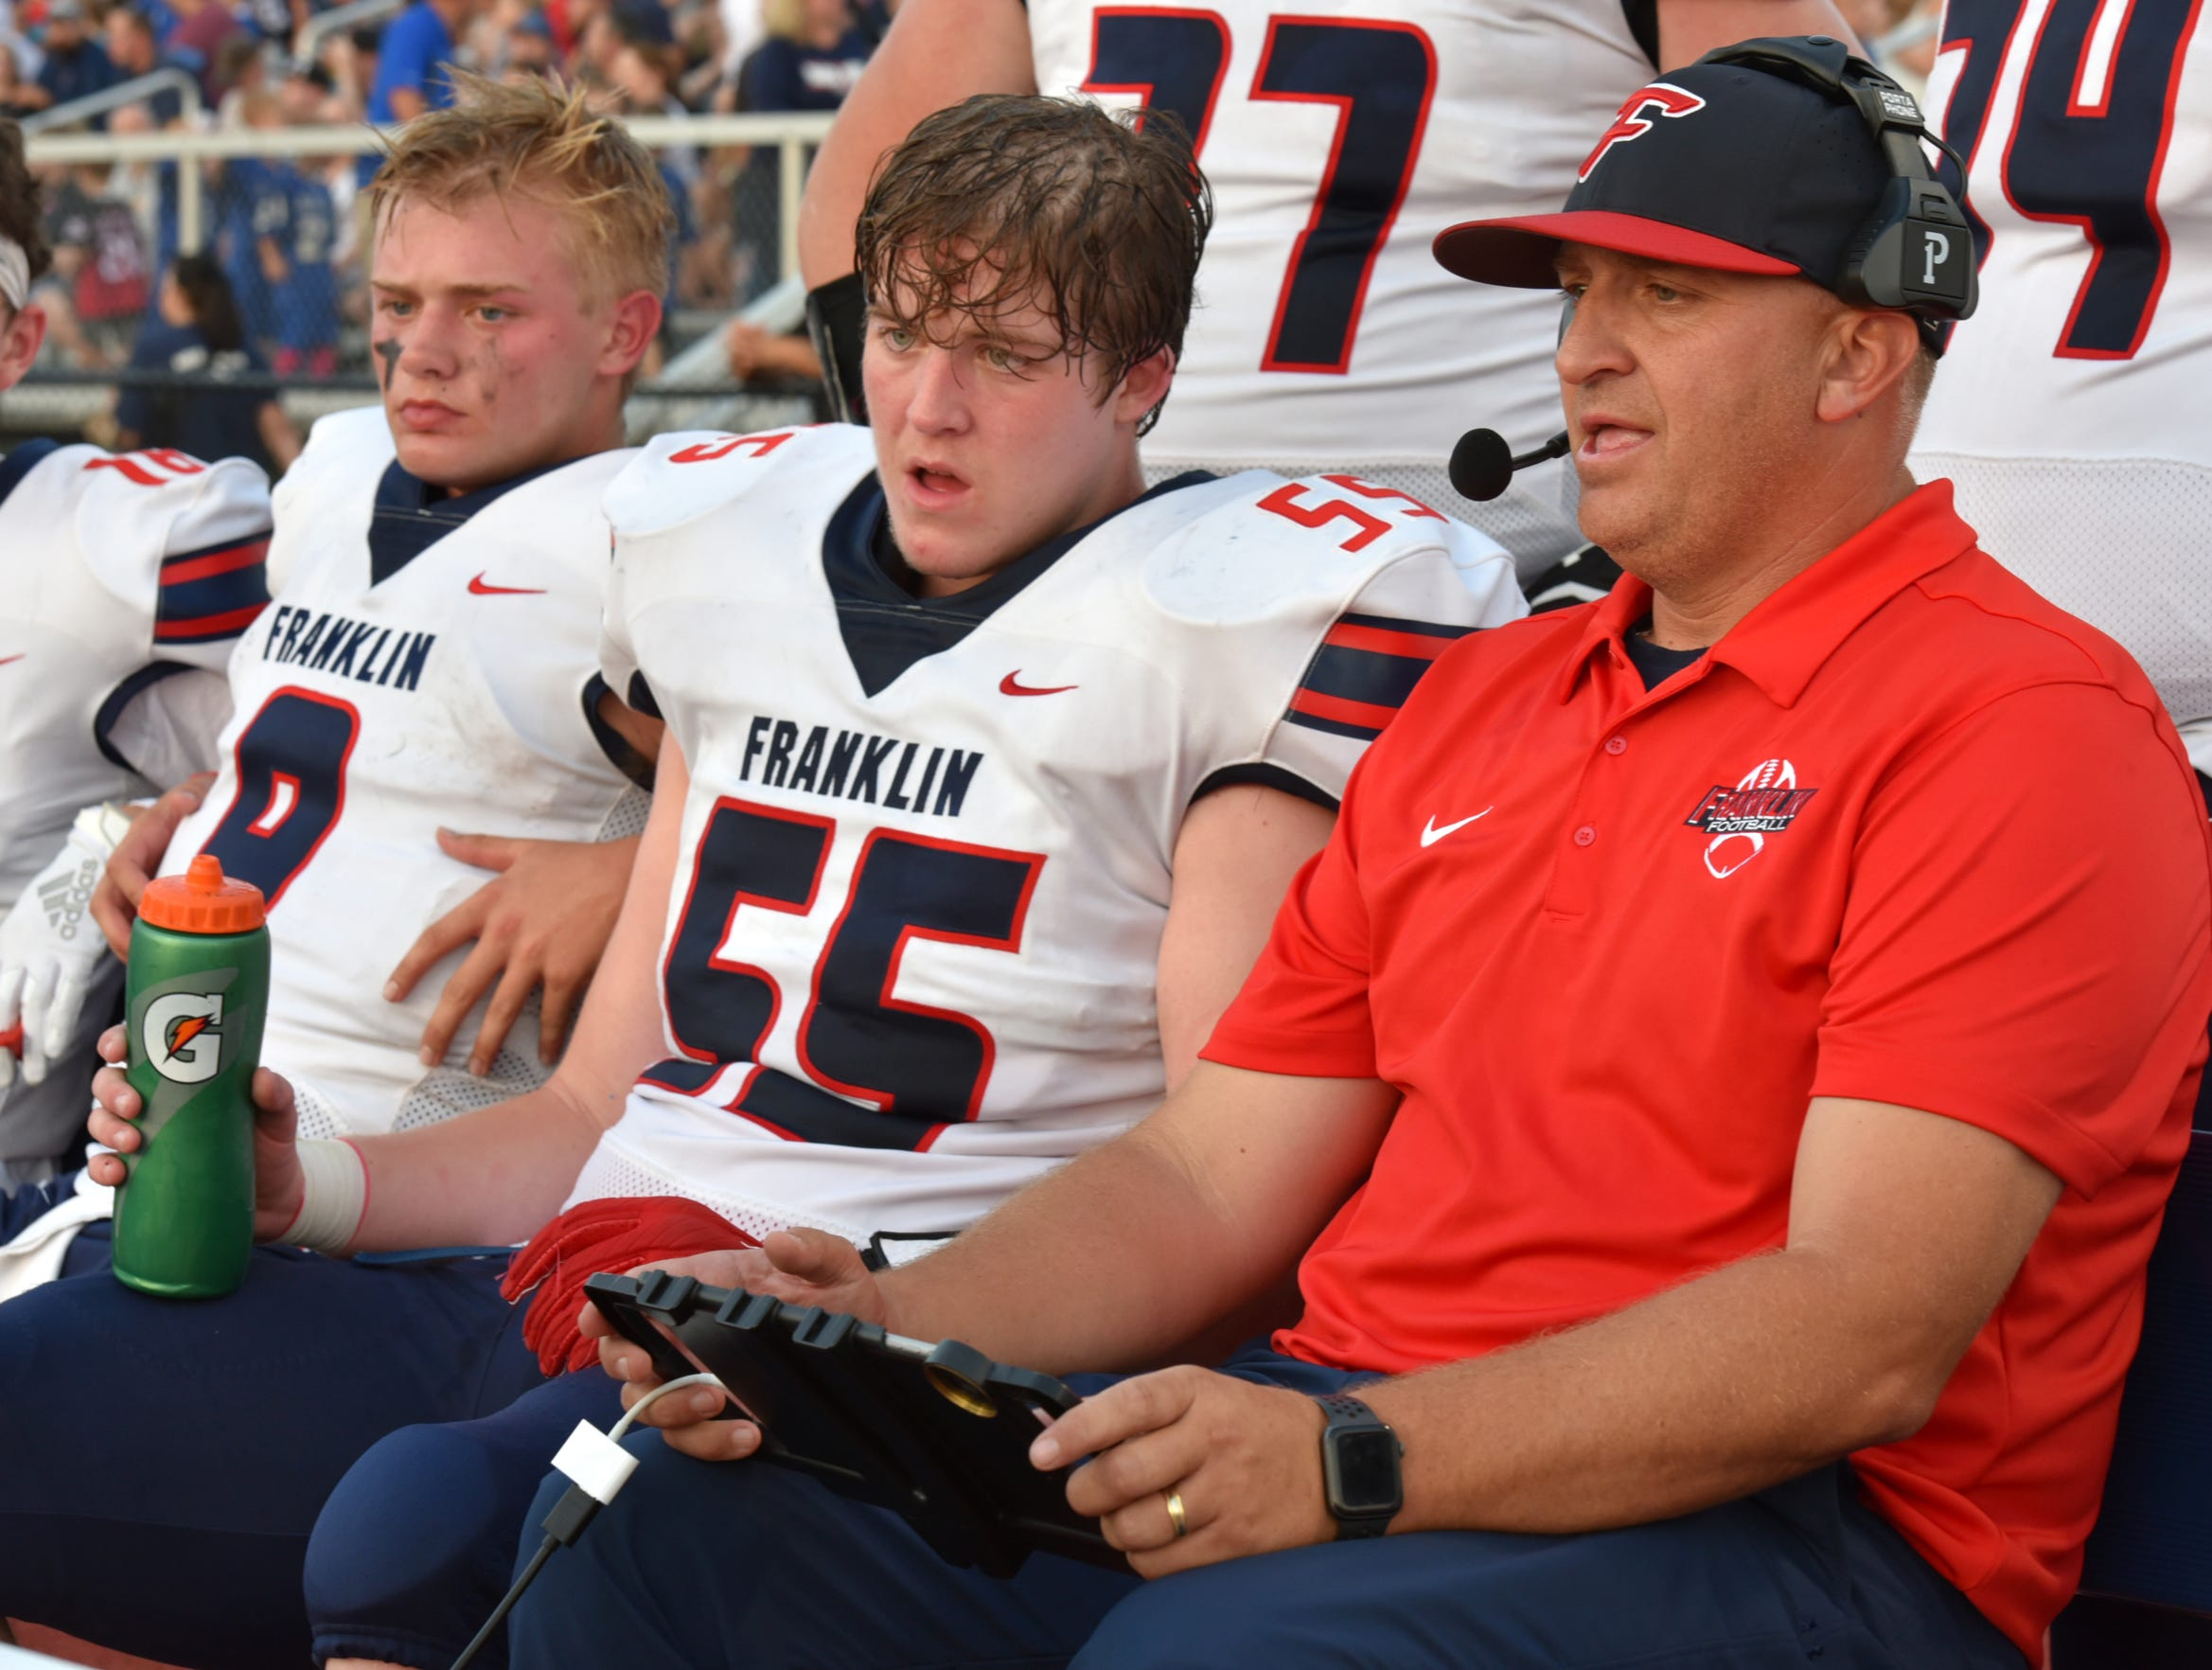 Jacob Kelbert, far left, sits with his father - Franklin Patriot coach Chis Kelbert, right, and Seth Winter, (#55) on Sept. 20 as the offense goes over a play early in the game.